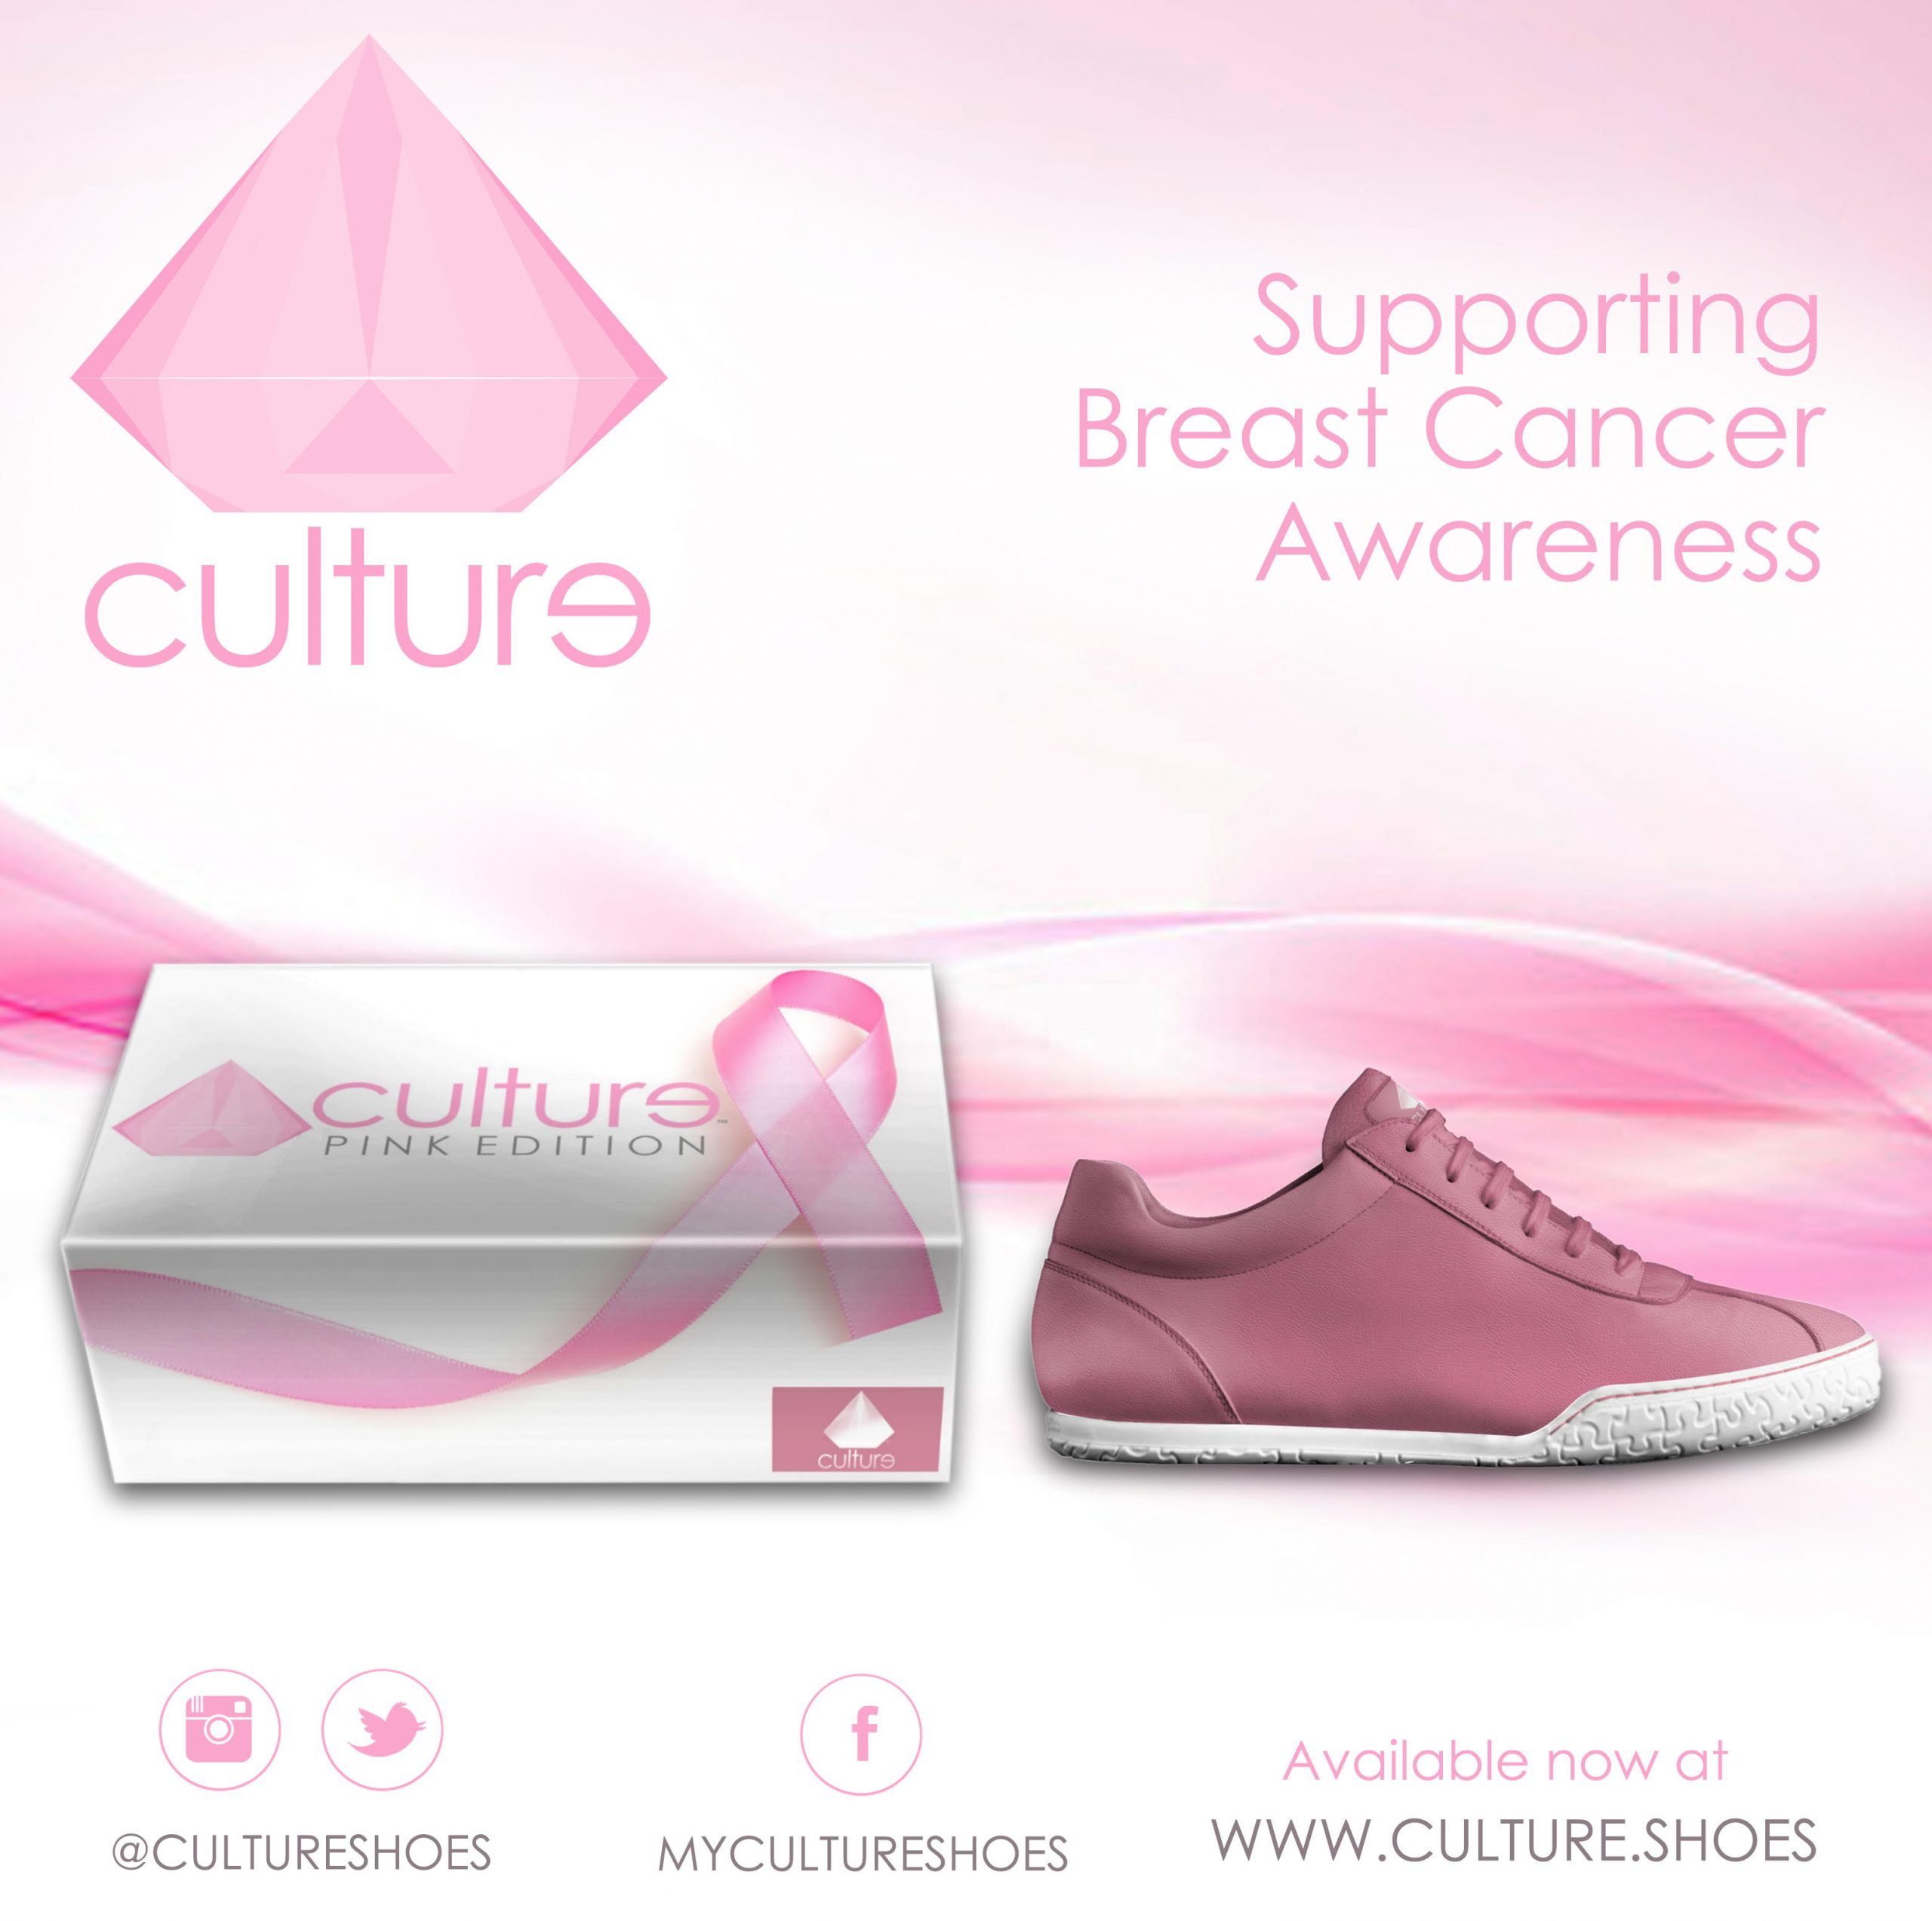 Culture 5: PINK EDITION is Now Available